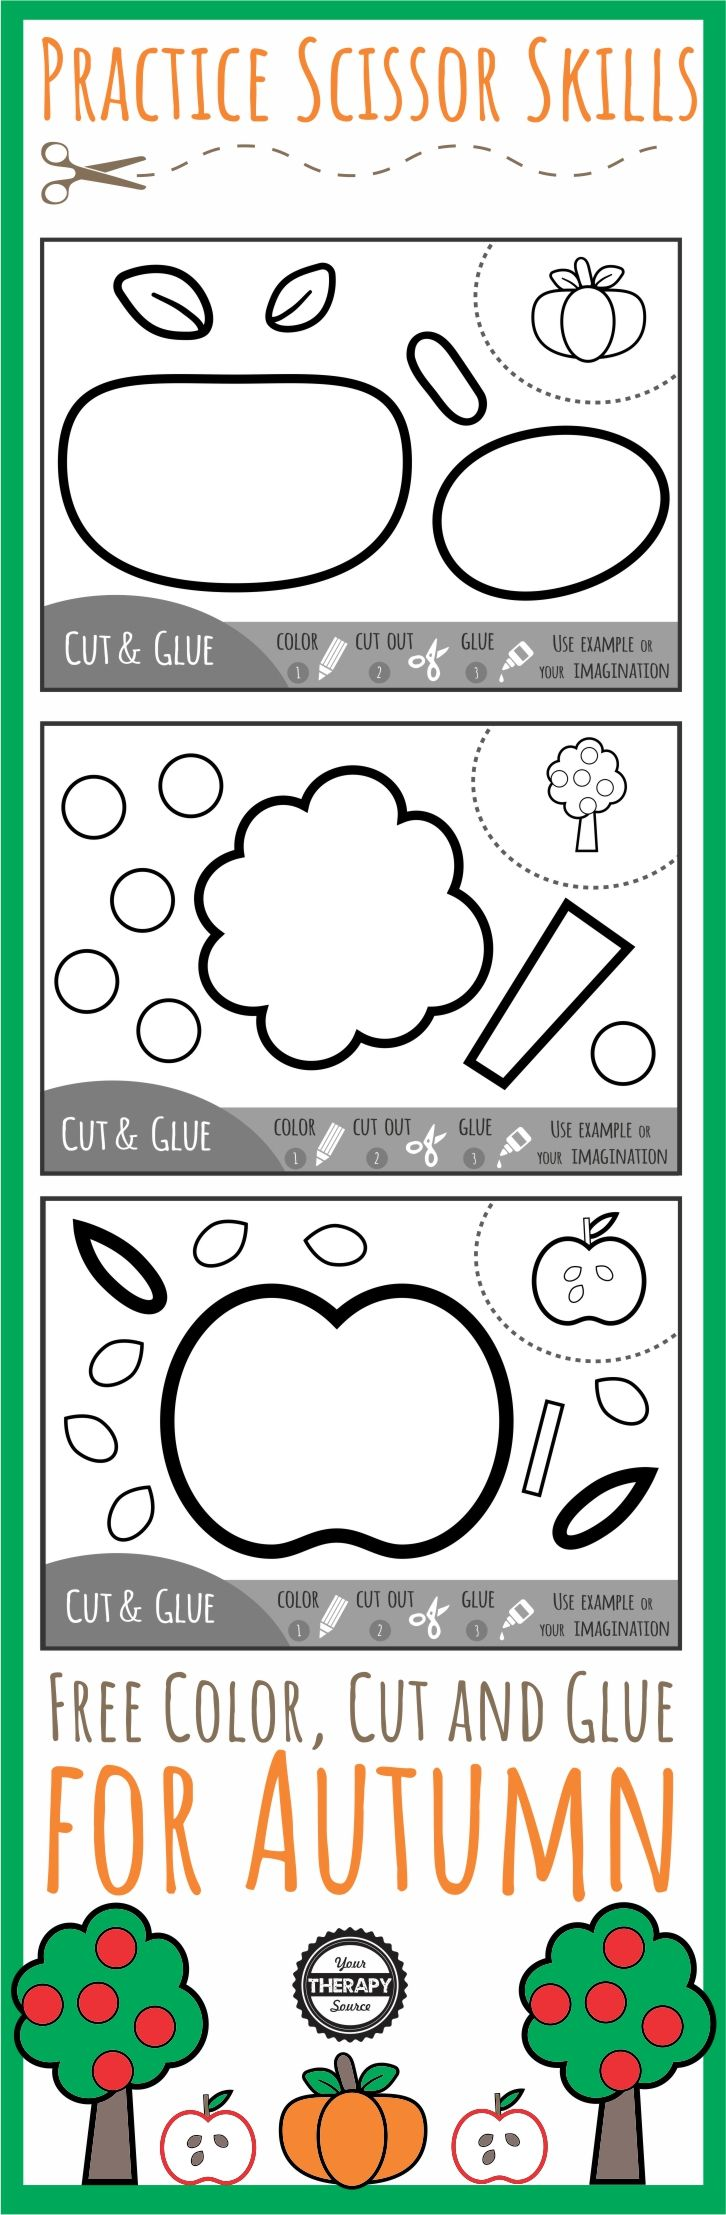 Color Cut Glue Scissor Practice for Fall - three FREE black and white printables to practice coloring, cutting and gluing with a Fall theme.